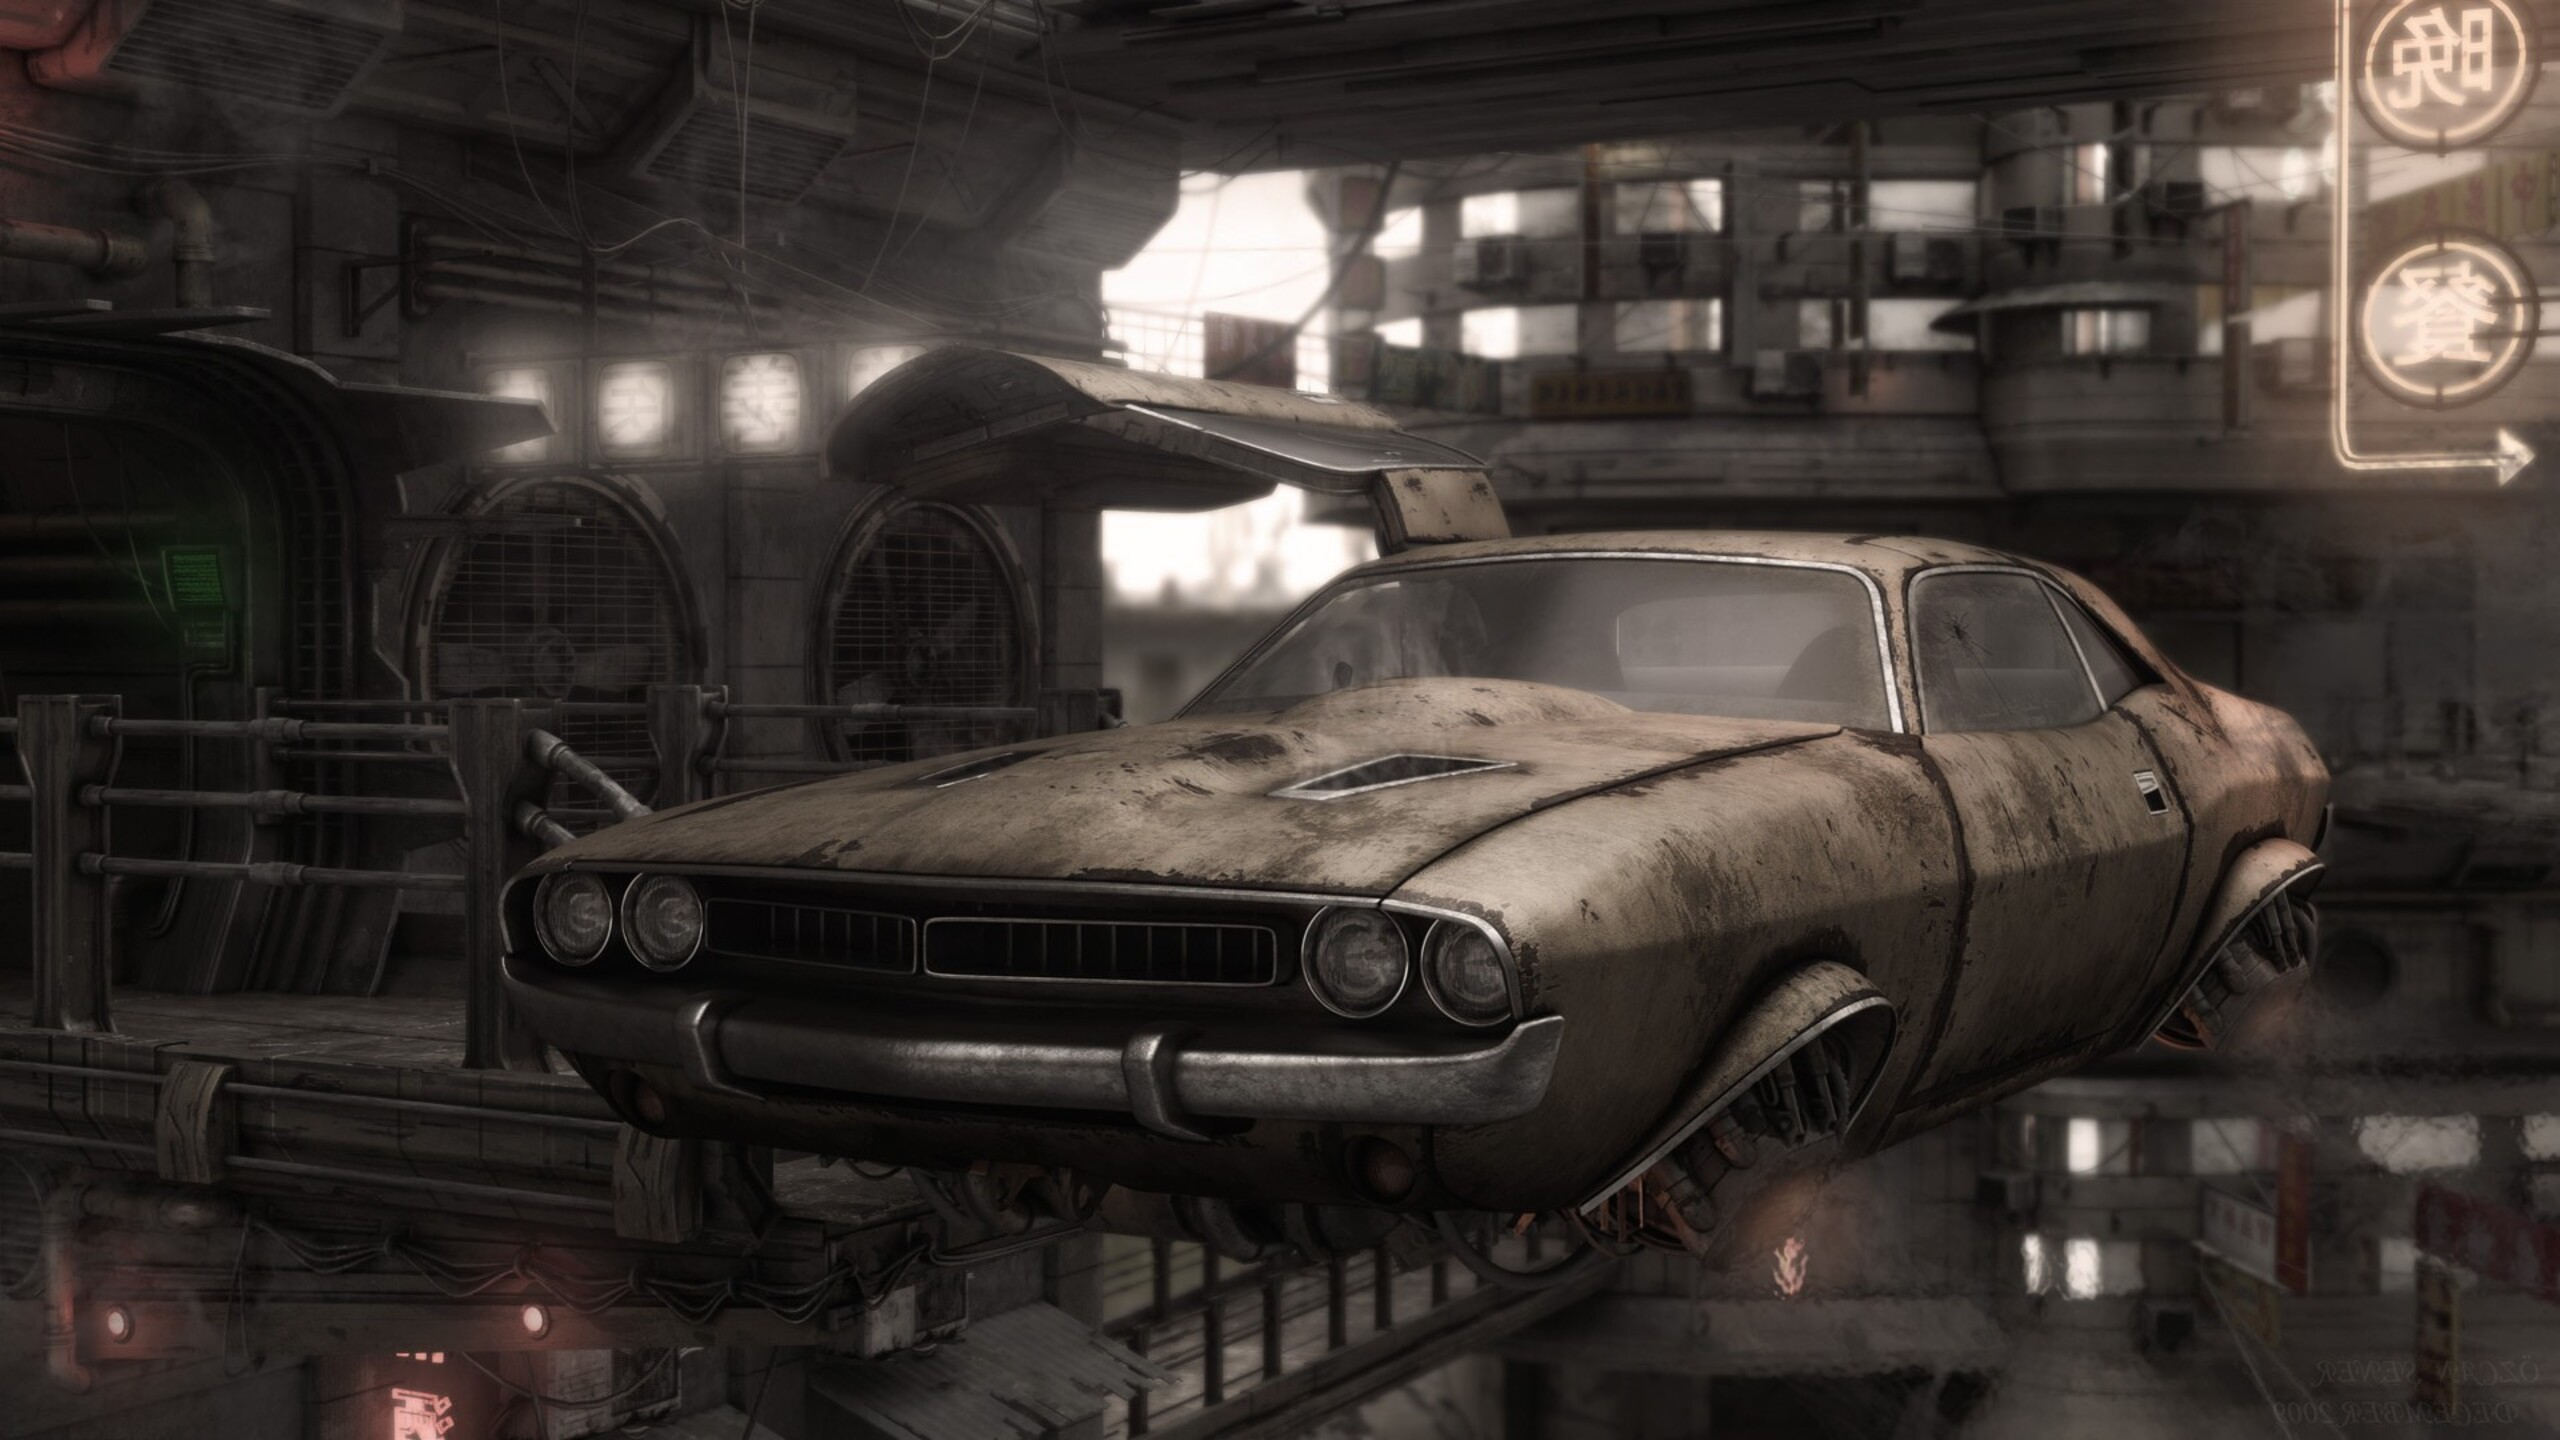 2560x1440 Muscle Car Vintage 1440p Resolution Hd 4k Wallpapers Images Backgrounds Photos And Pictures